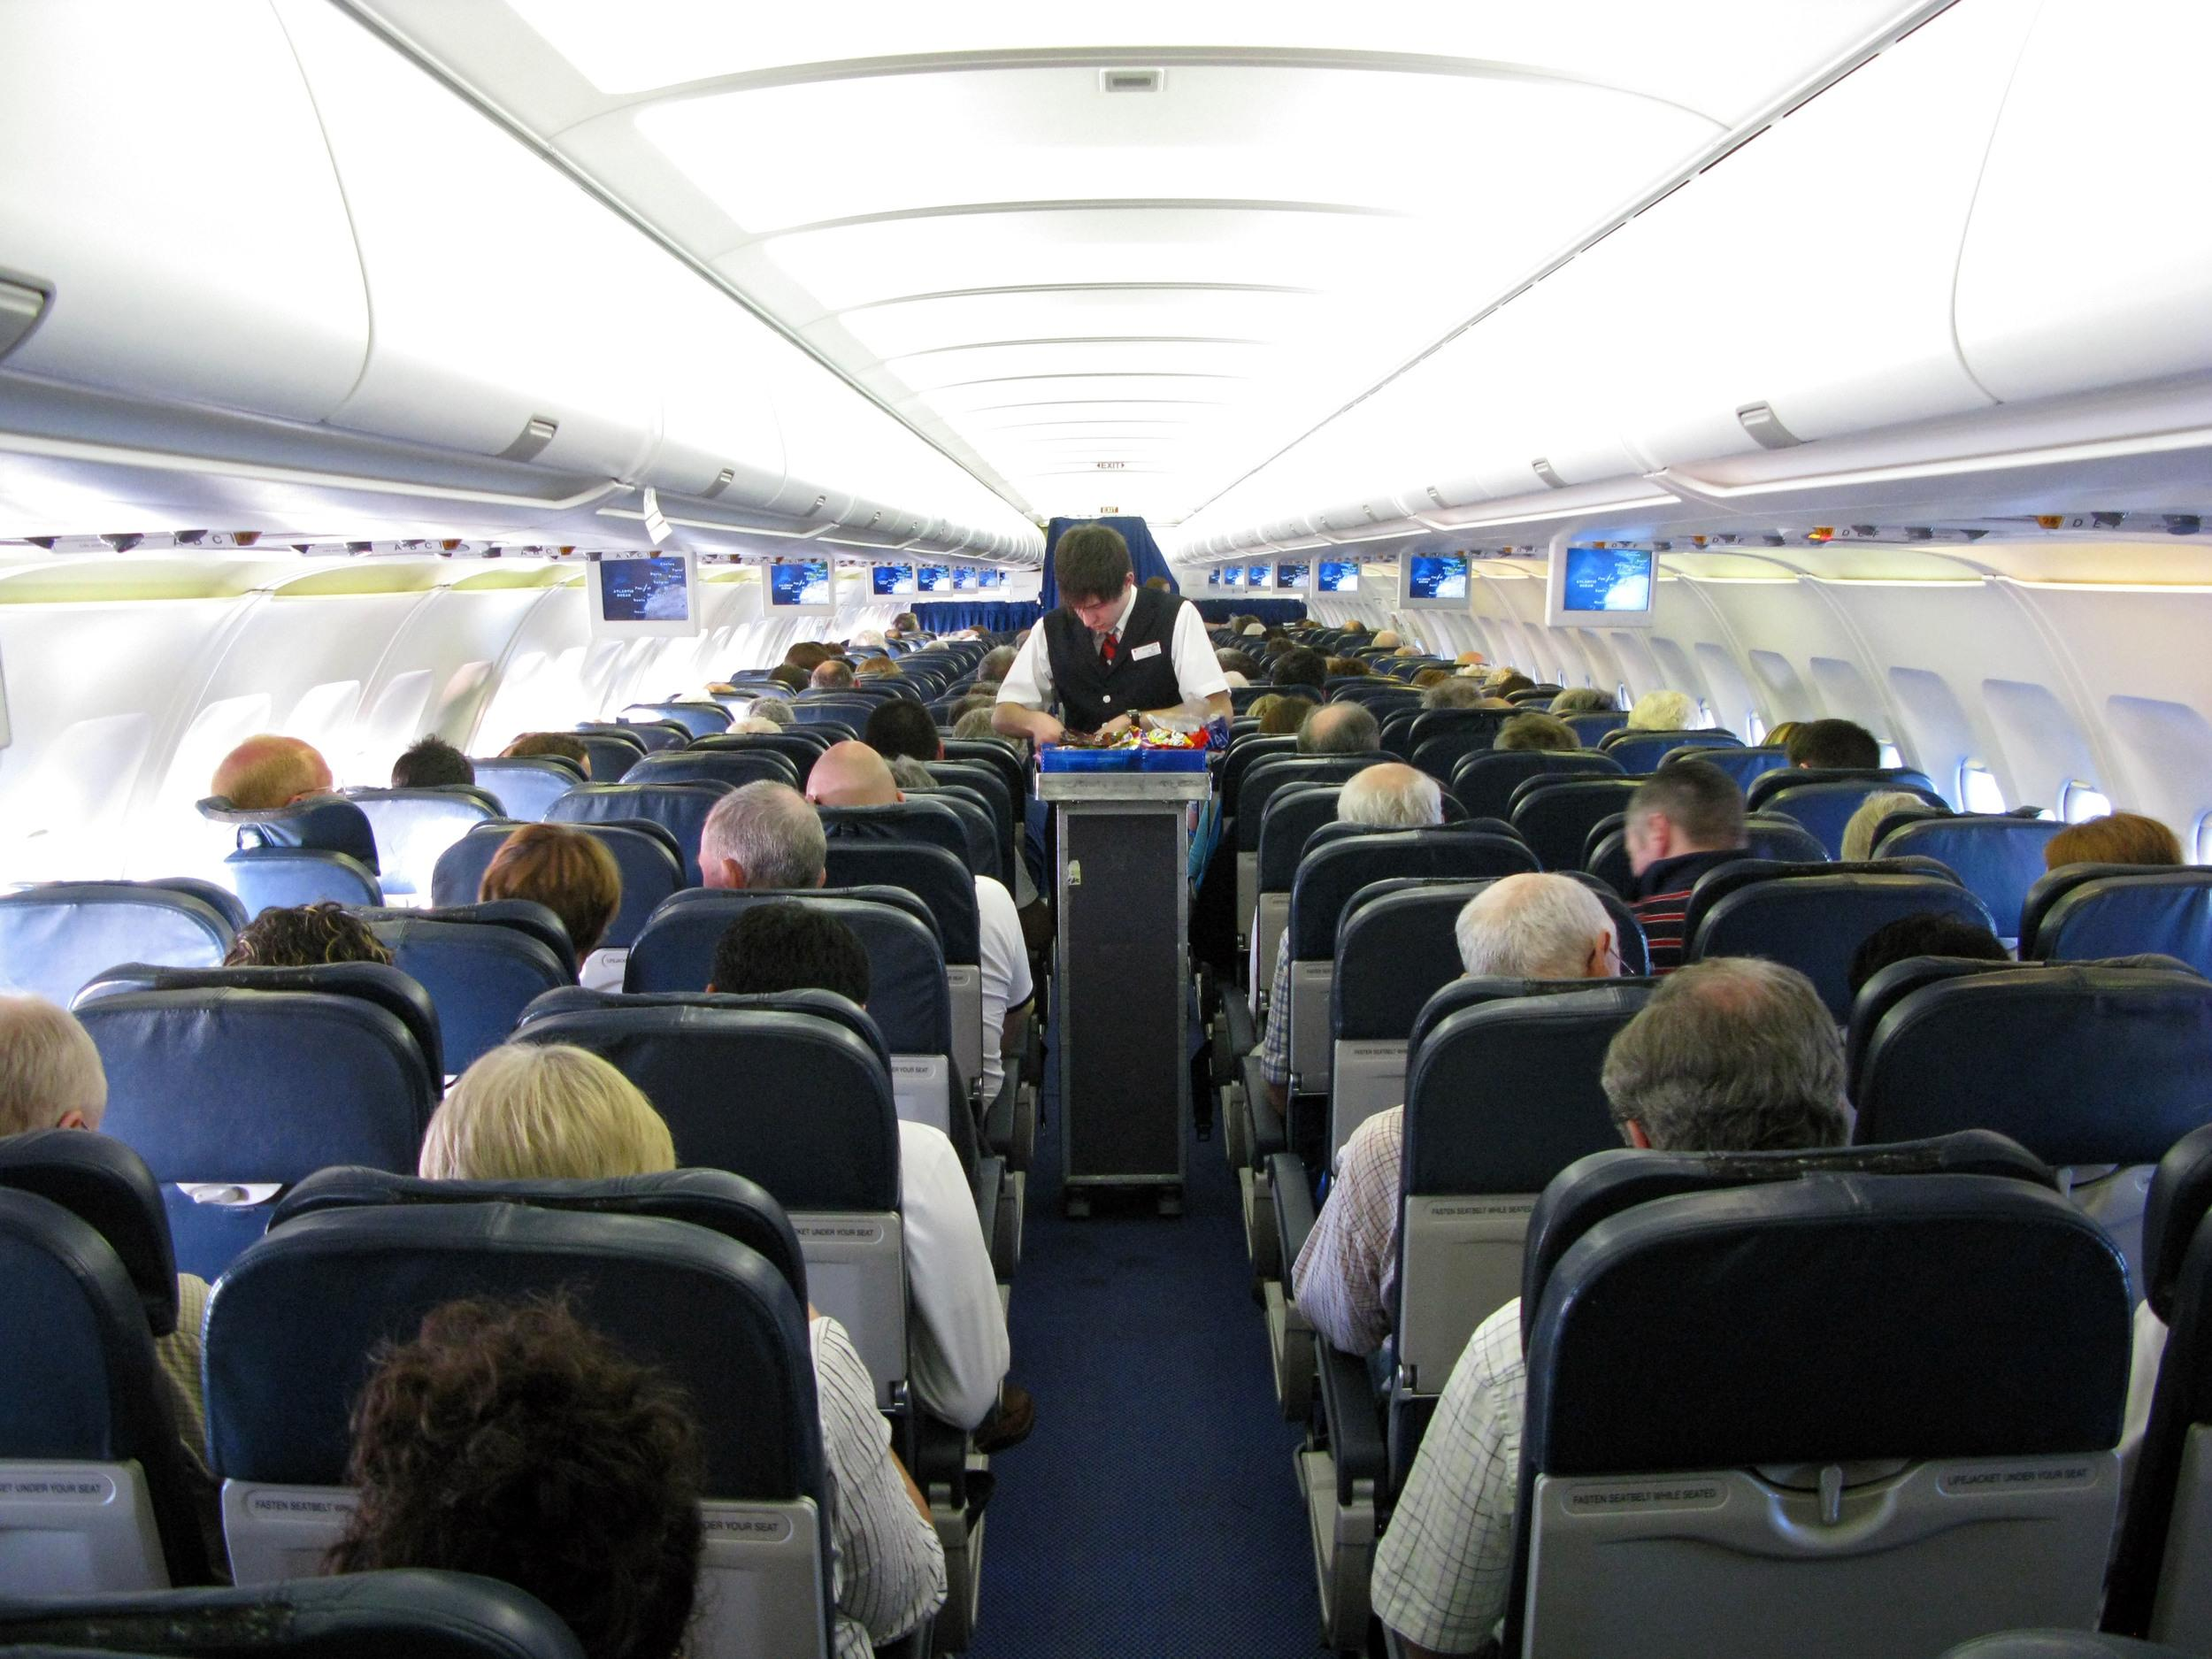 <strong>True!</strong> It is actually very common for airlines to overbook flights as it is a rule, rather than an exception, that a certain number of passengers will not turn up. Depending on the nation, airlines try to stop having empty seats on flights by overbooking a certain number of seats.